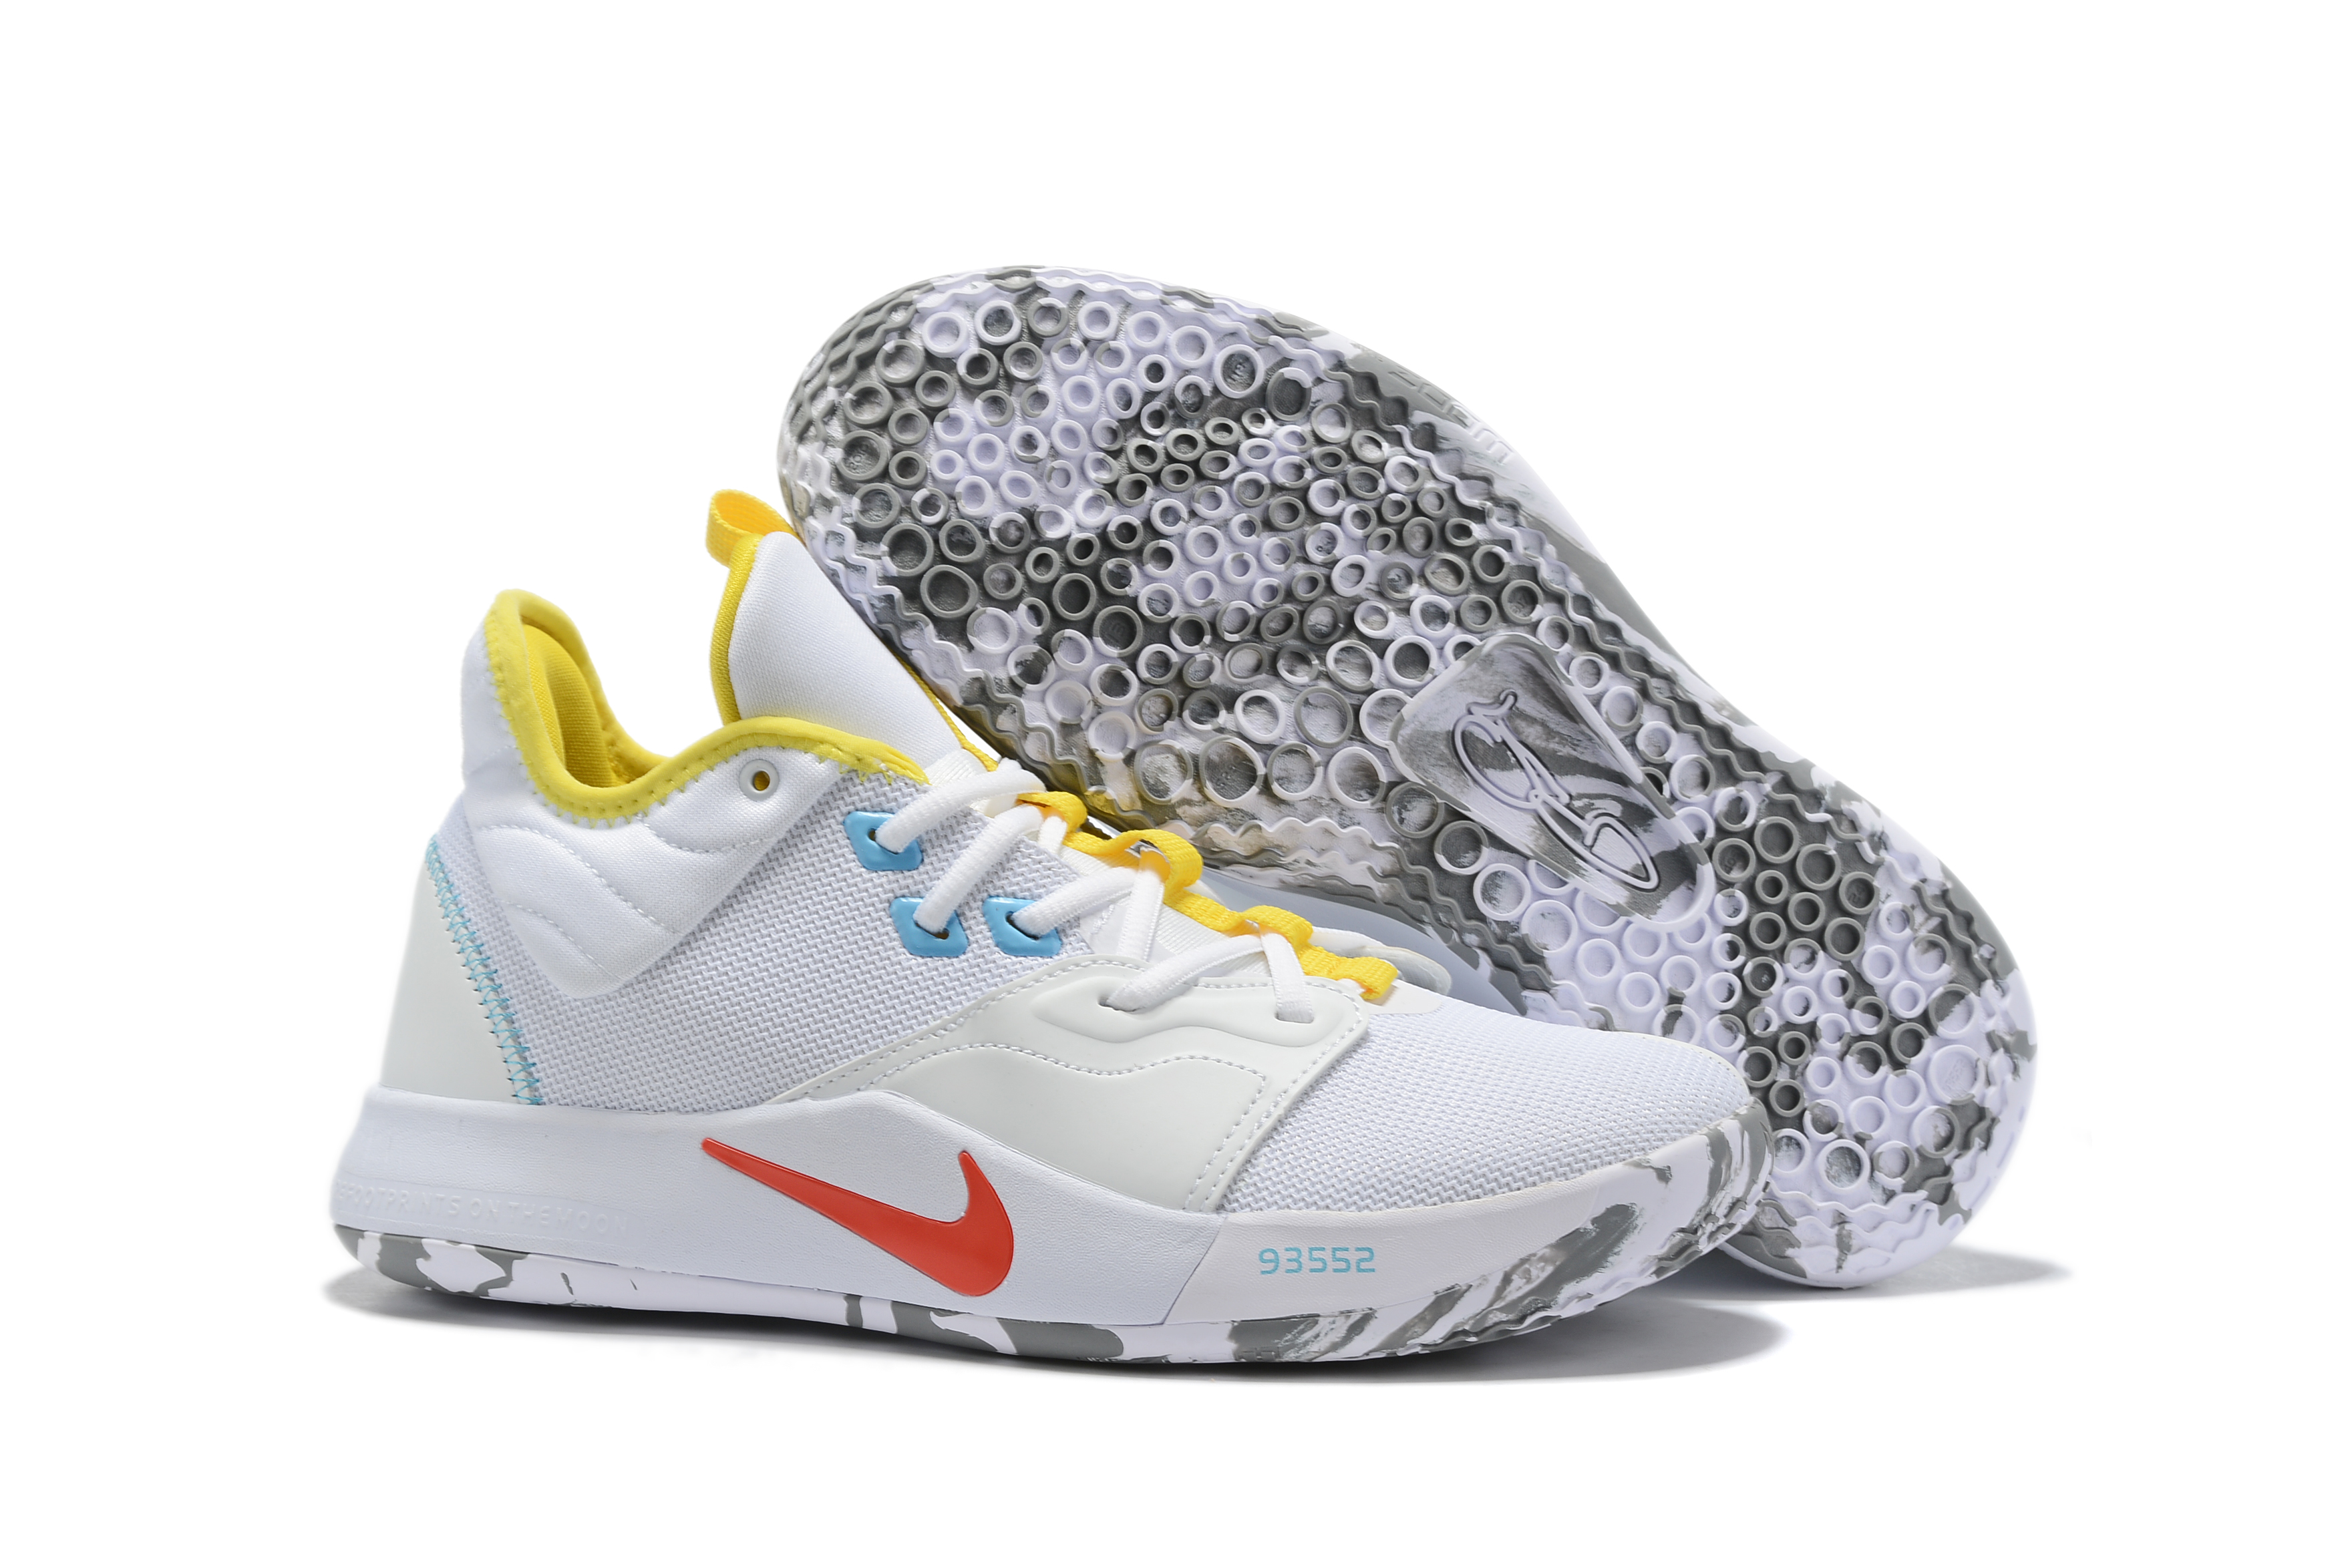 New Nike PG 3 White Yellow Red Shoes